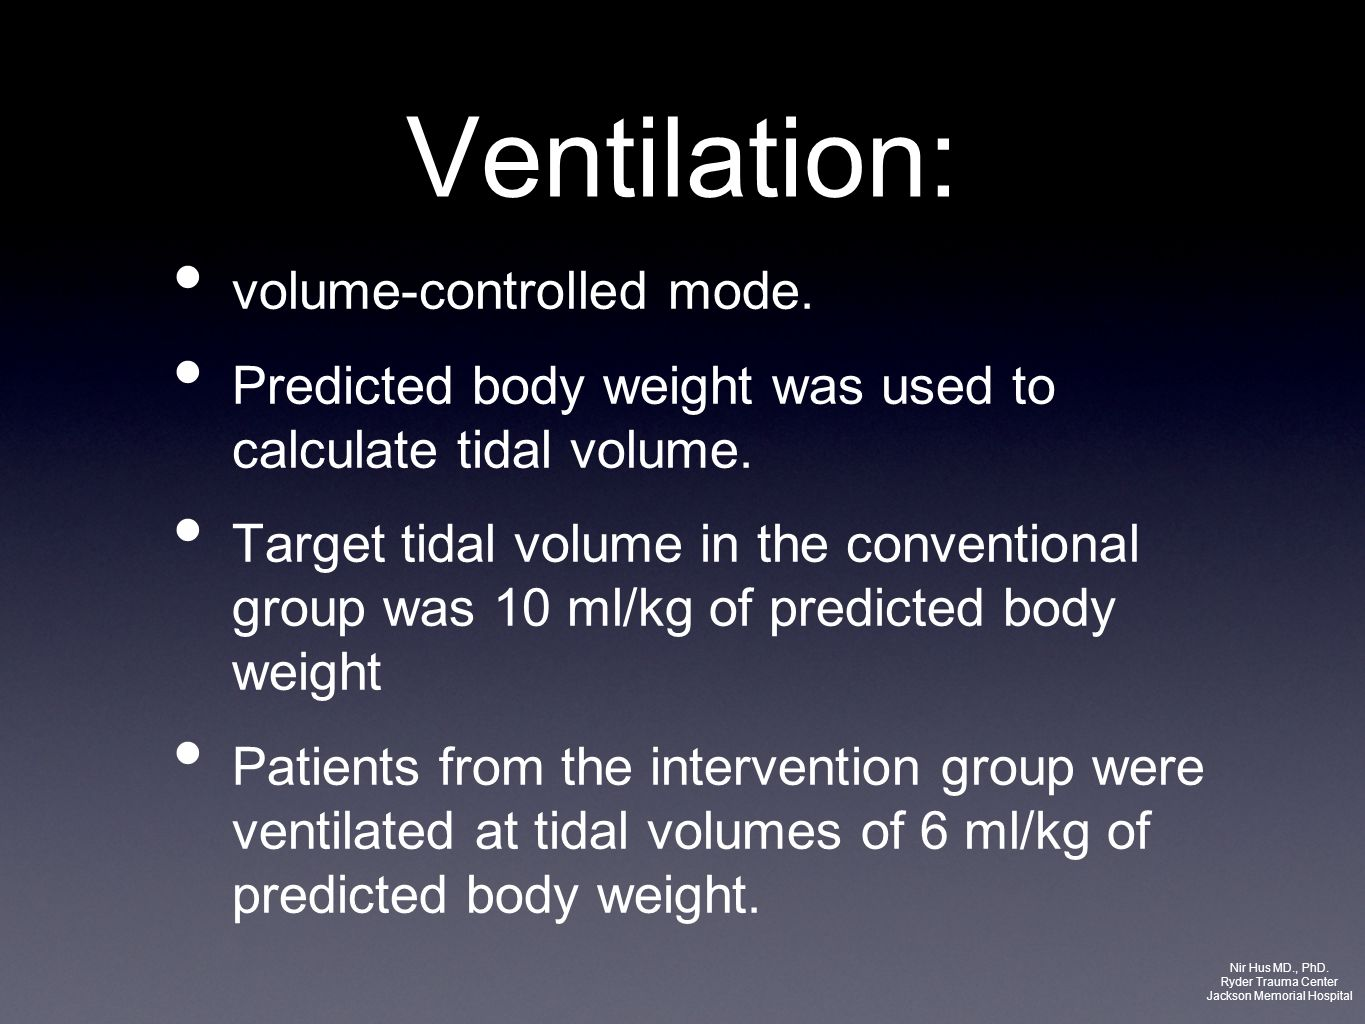 Ventilation: volume-controlled mode. Predicted body weight was used to calculate tidal volume. Target tidal volume in the conventional group was 10 ml